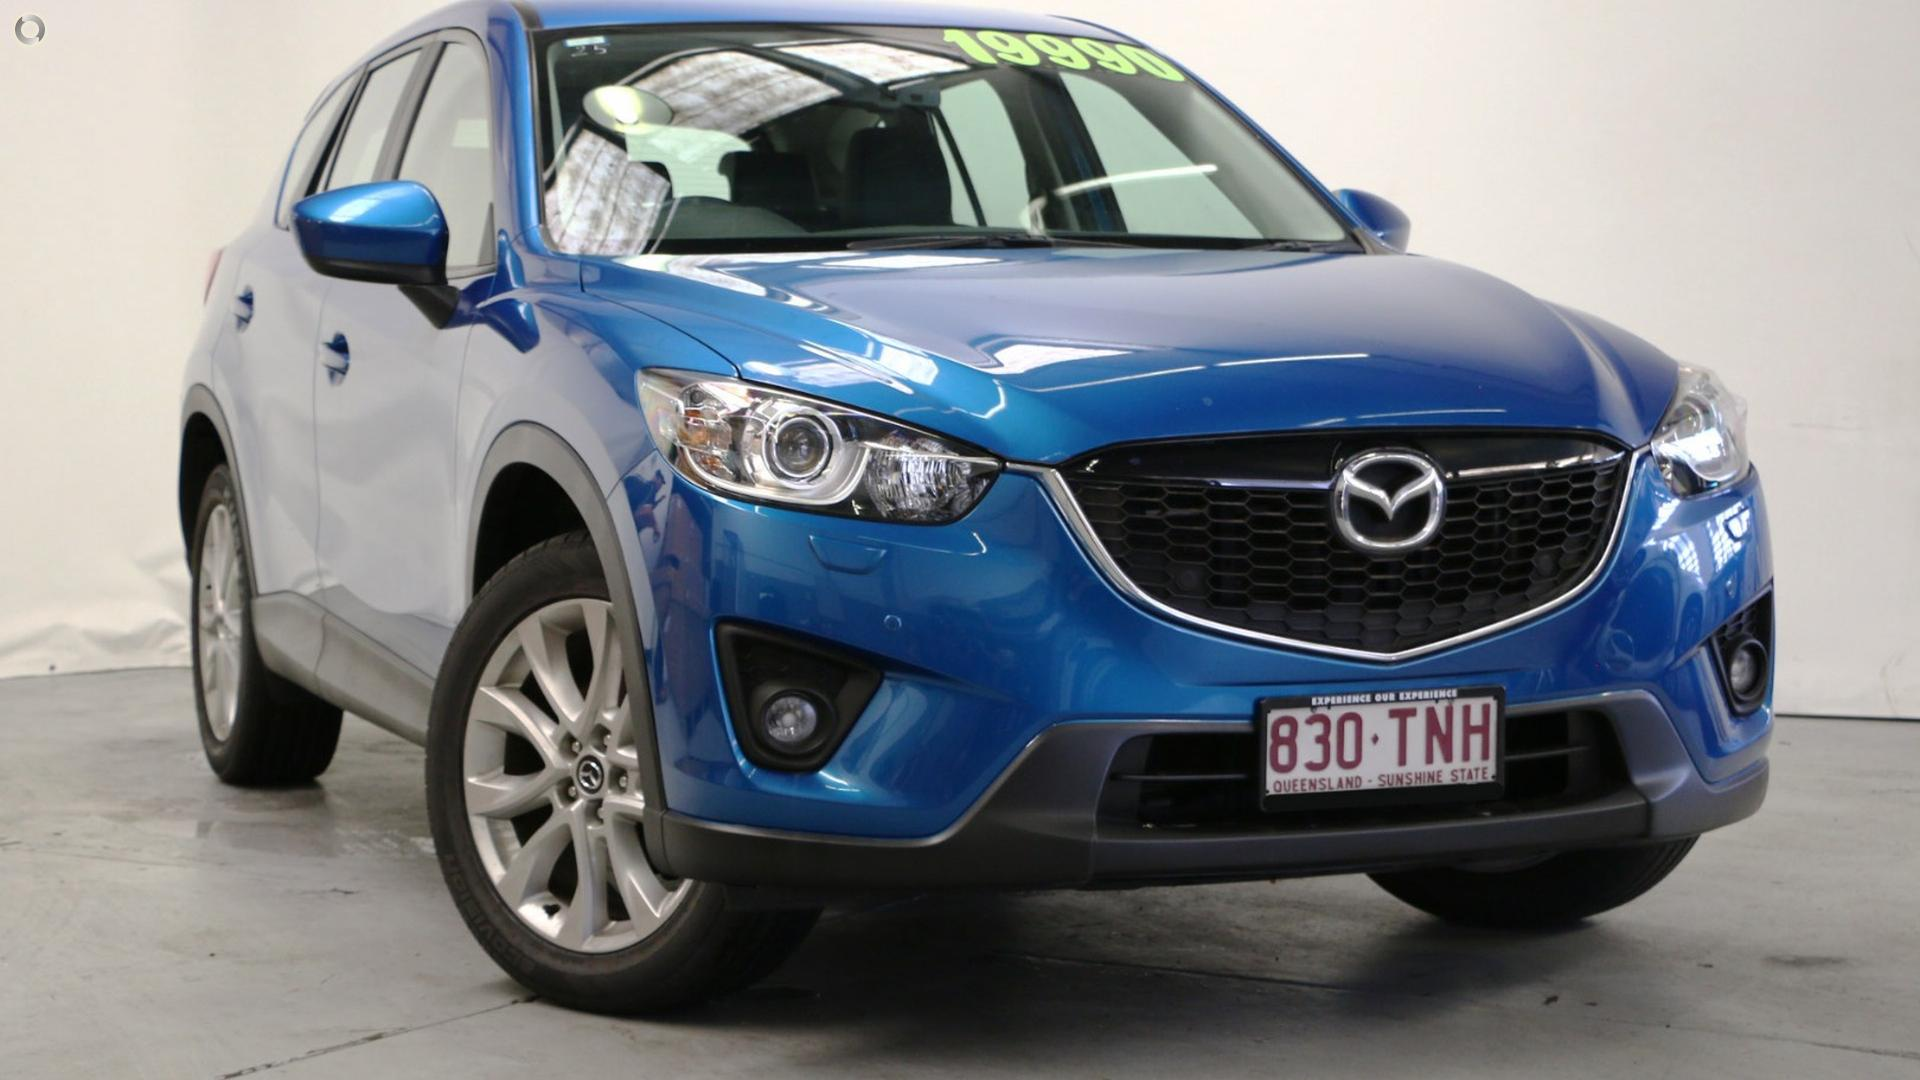 2013 Mazda Cx-5 Grand Touring KE Series